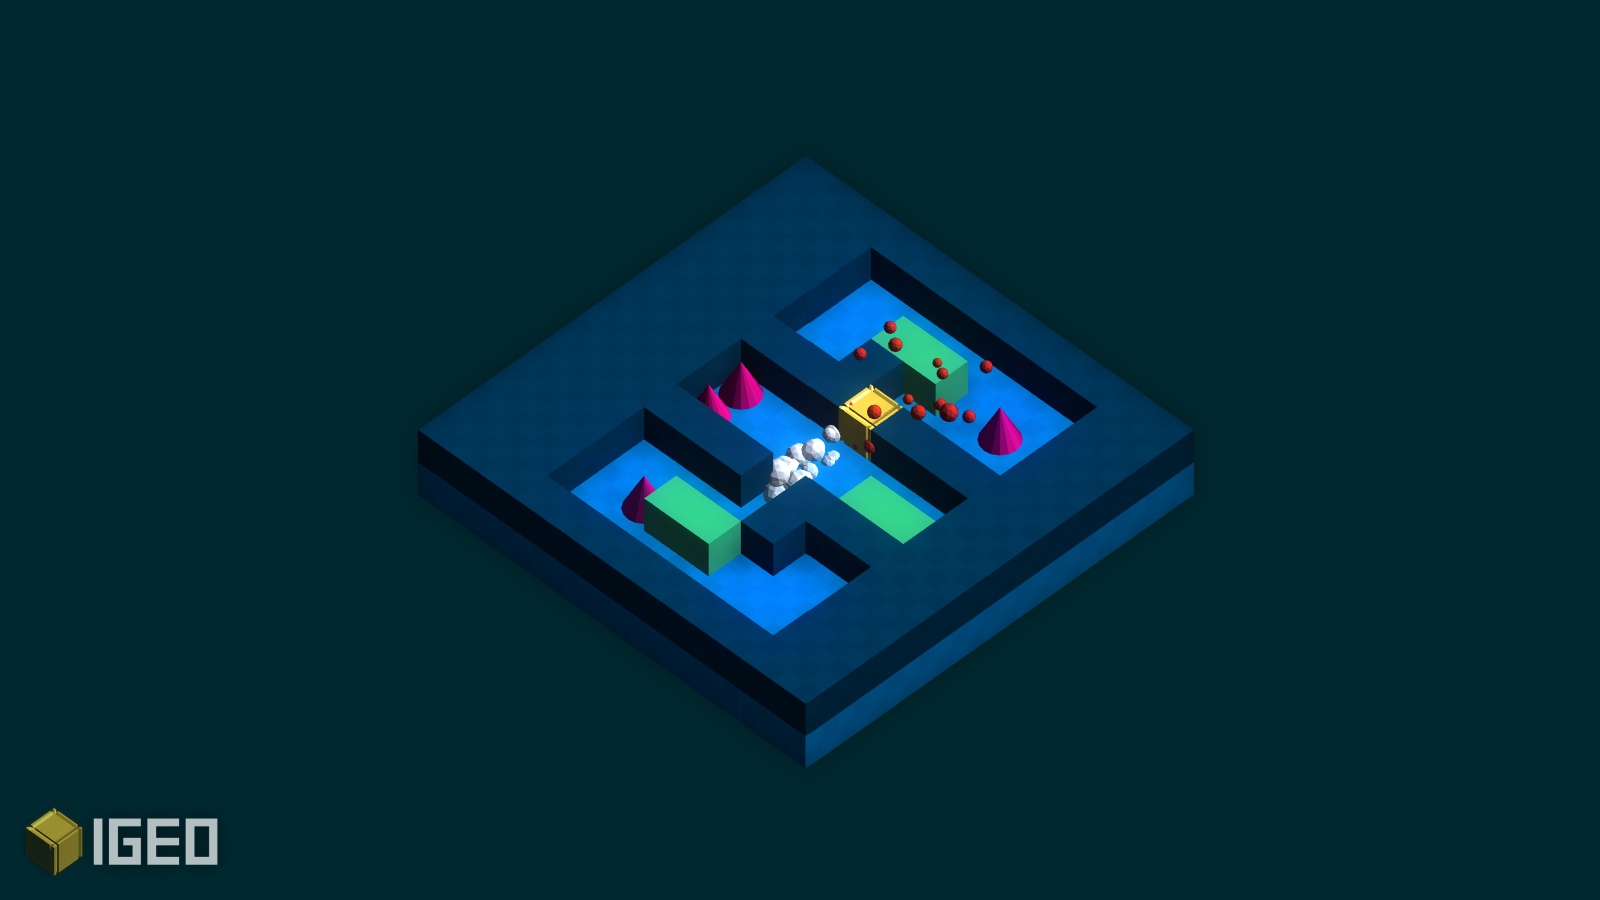 IGEO, our latest puzzle game